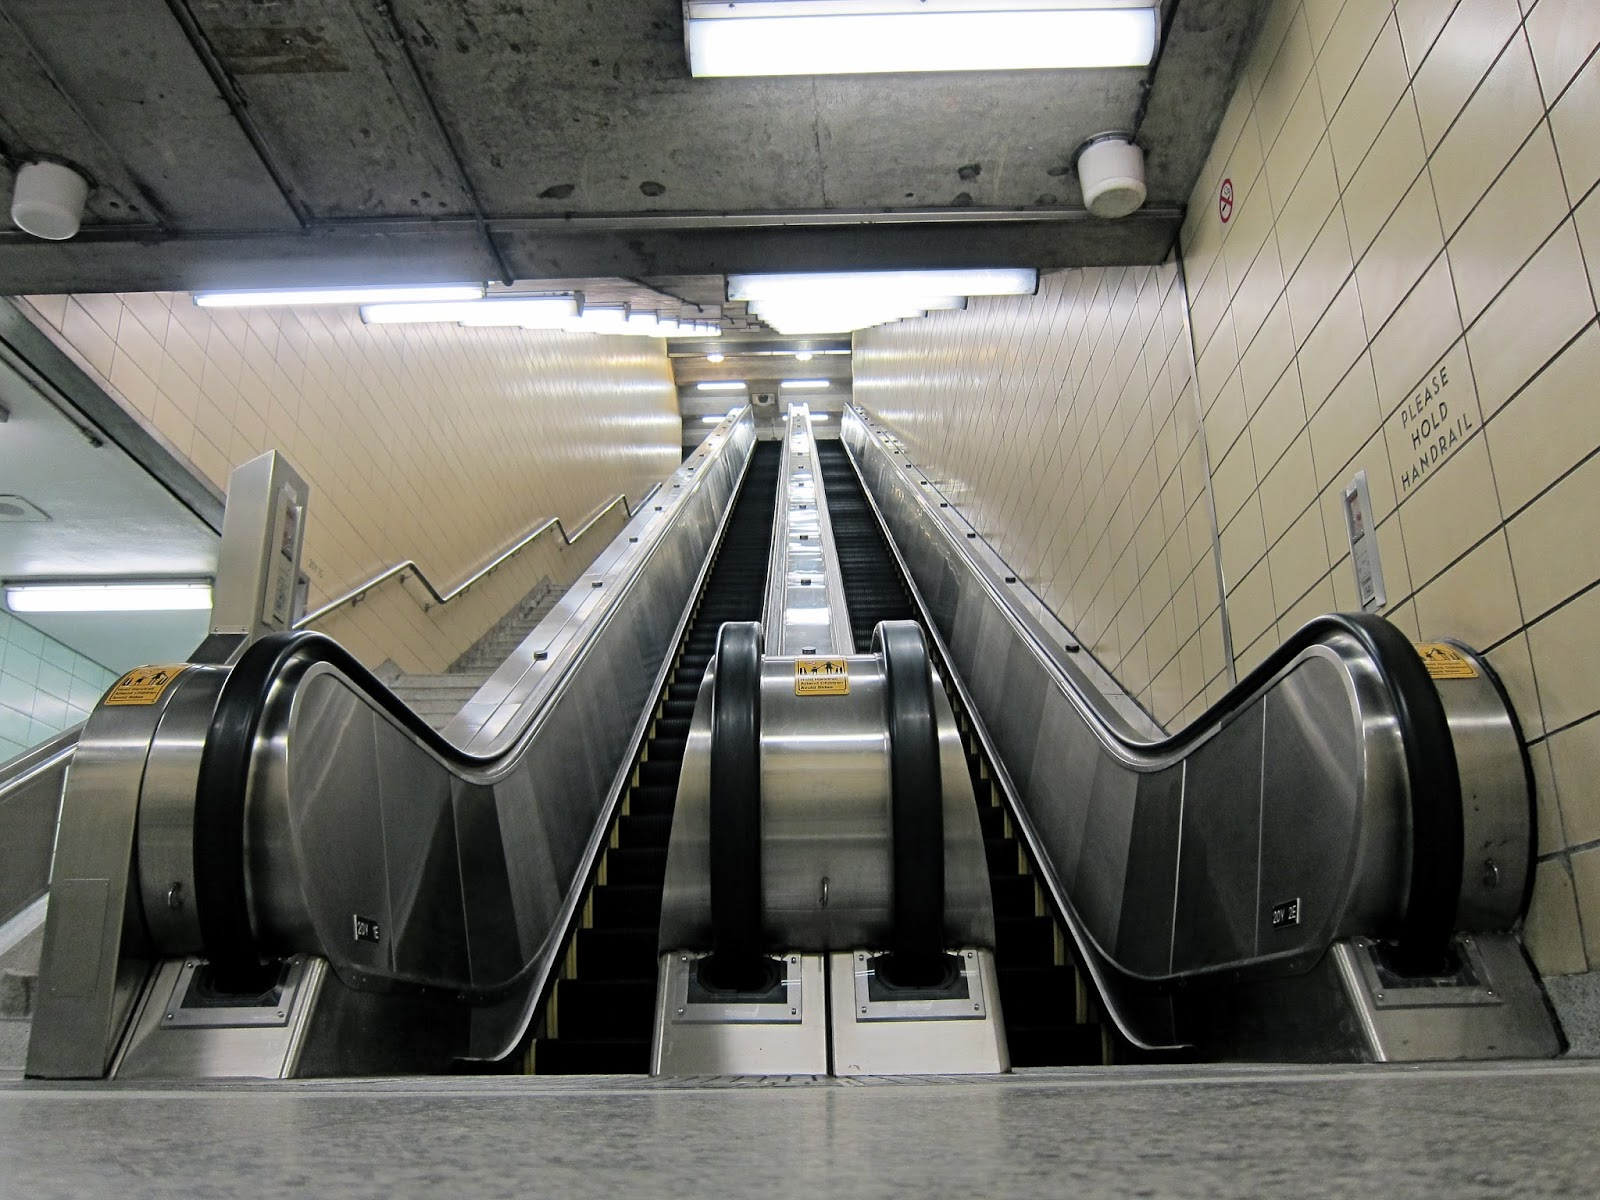 York Mills escalators